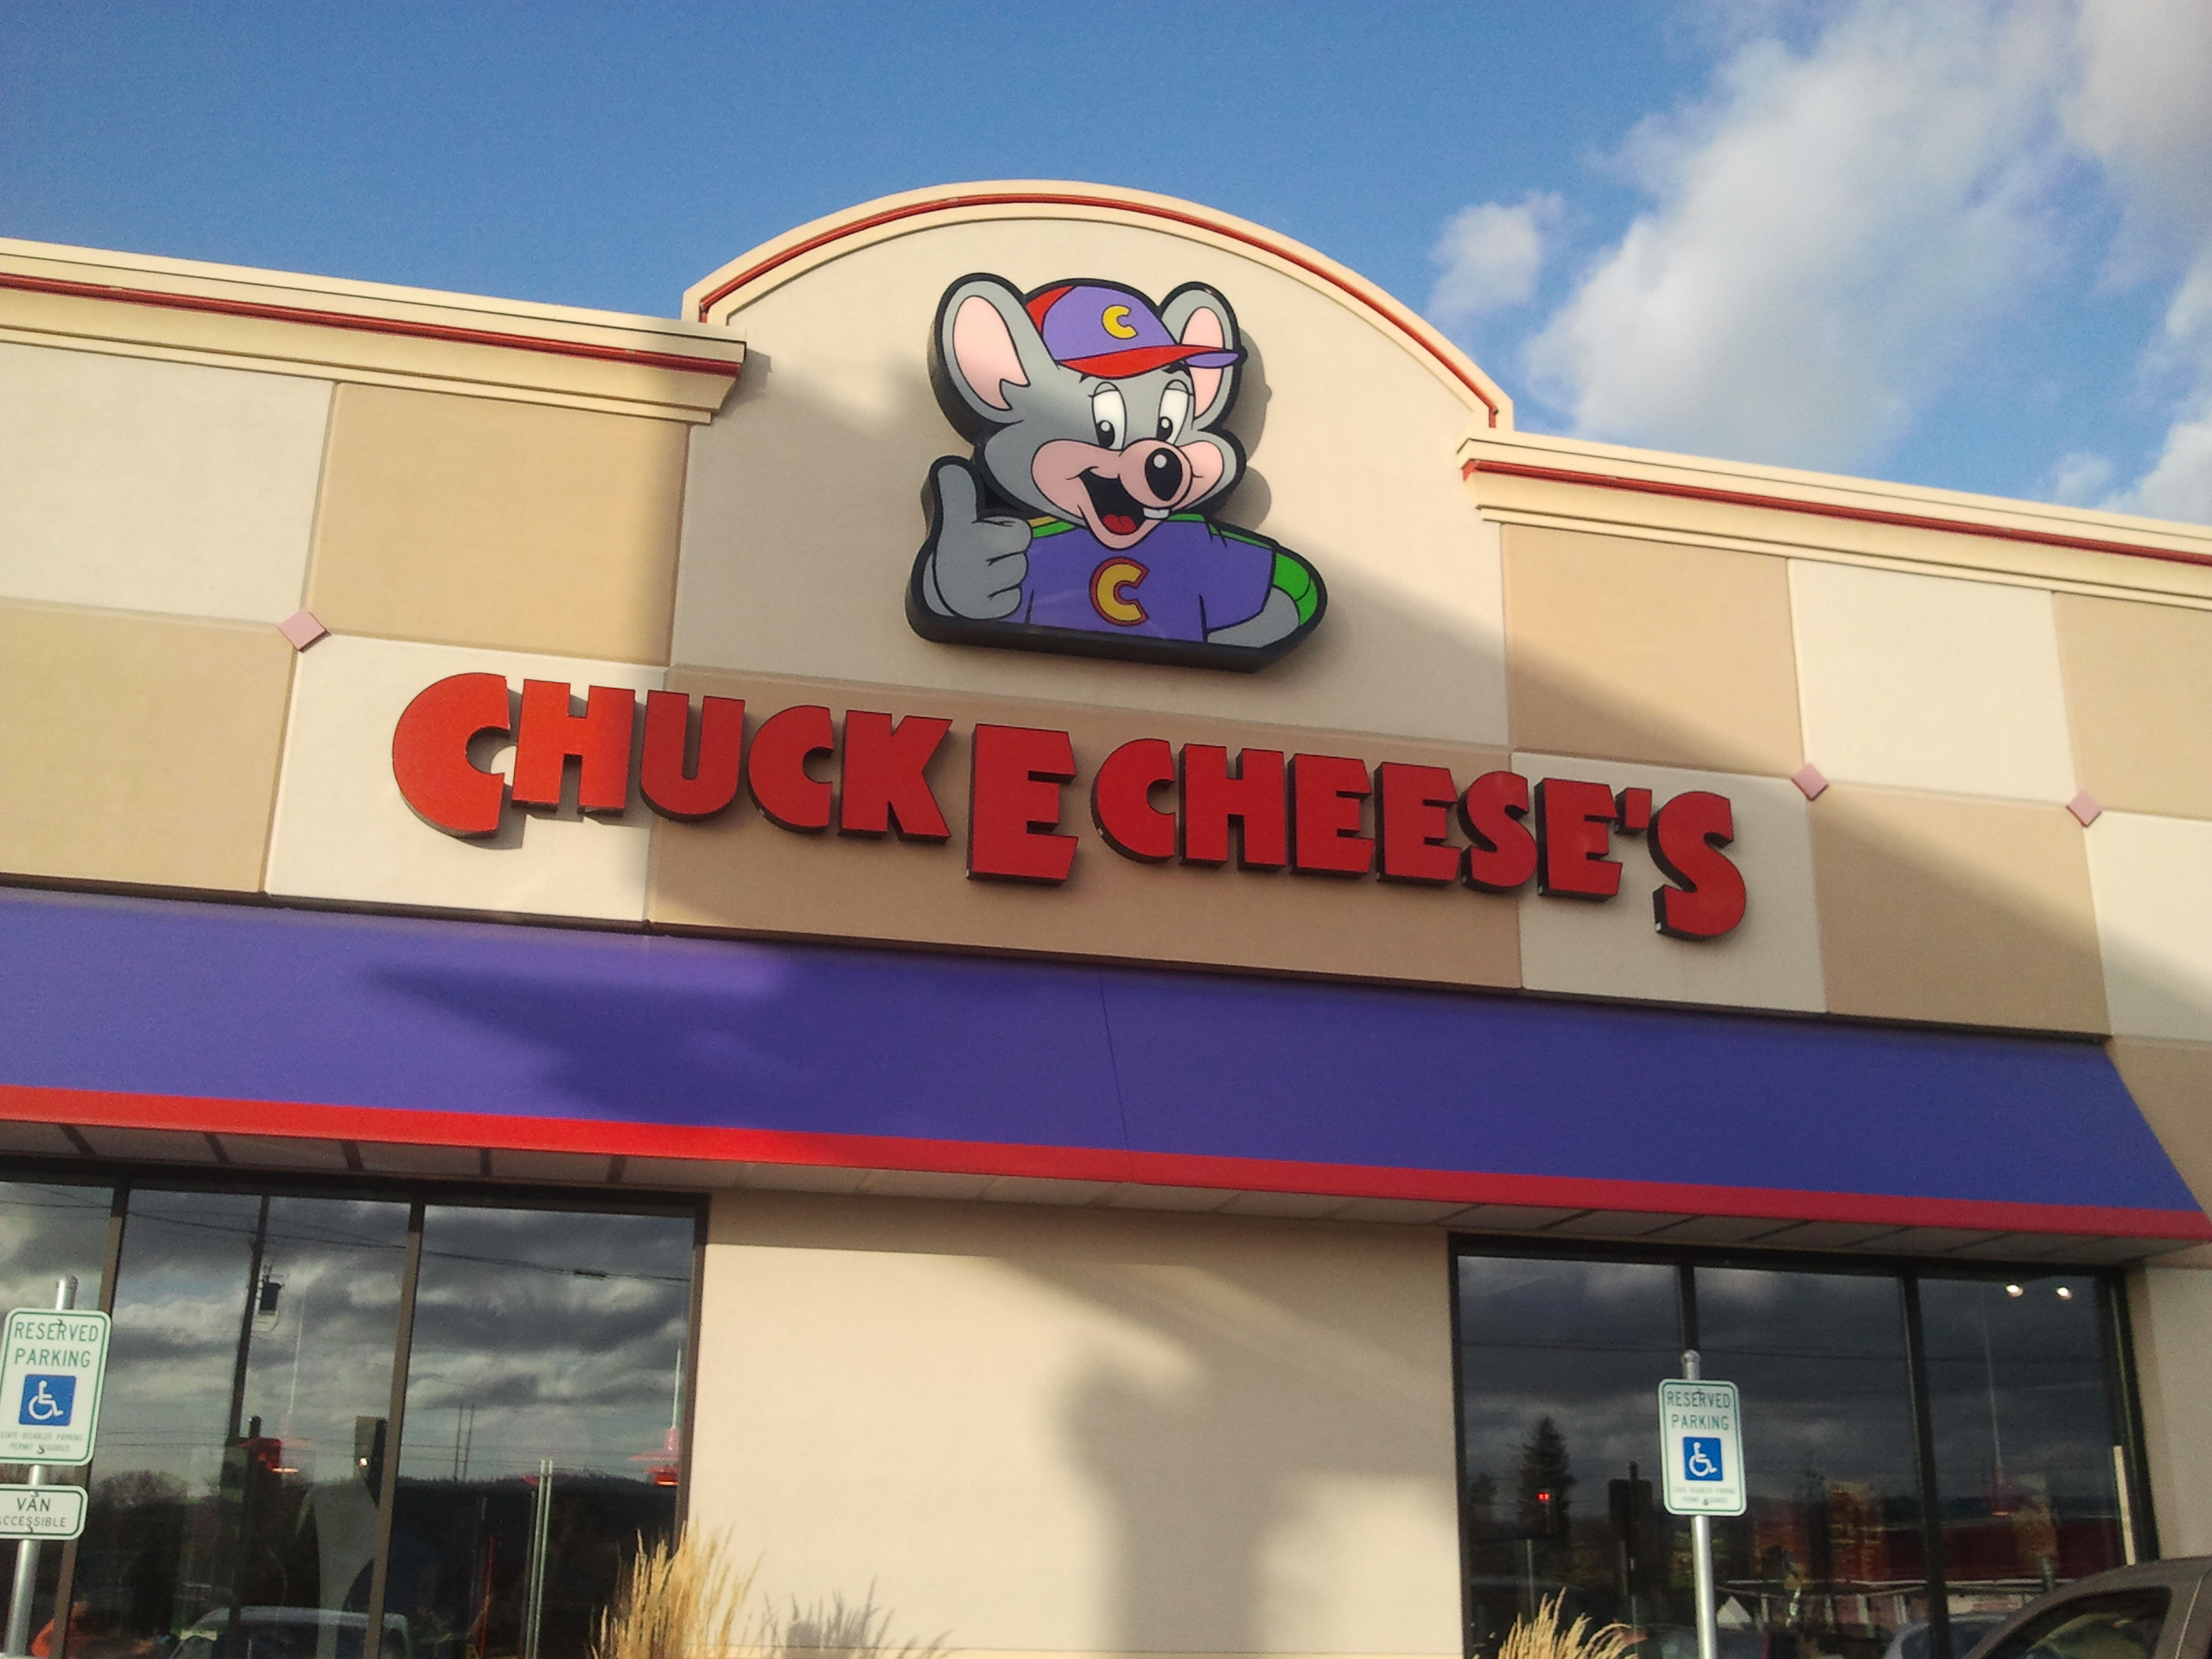 Career opportunities at Chuck E. Cheese's near you. View current job opportunities or search for positions that best match your talents.